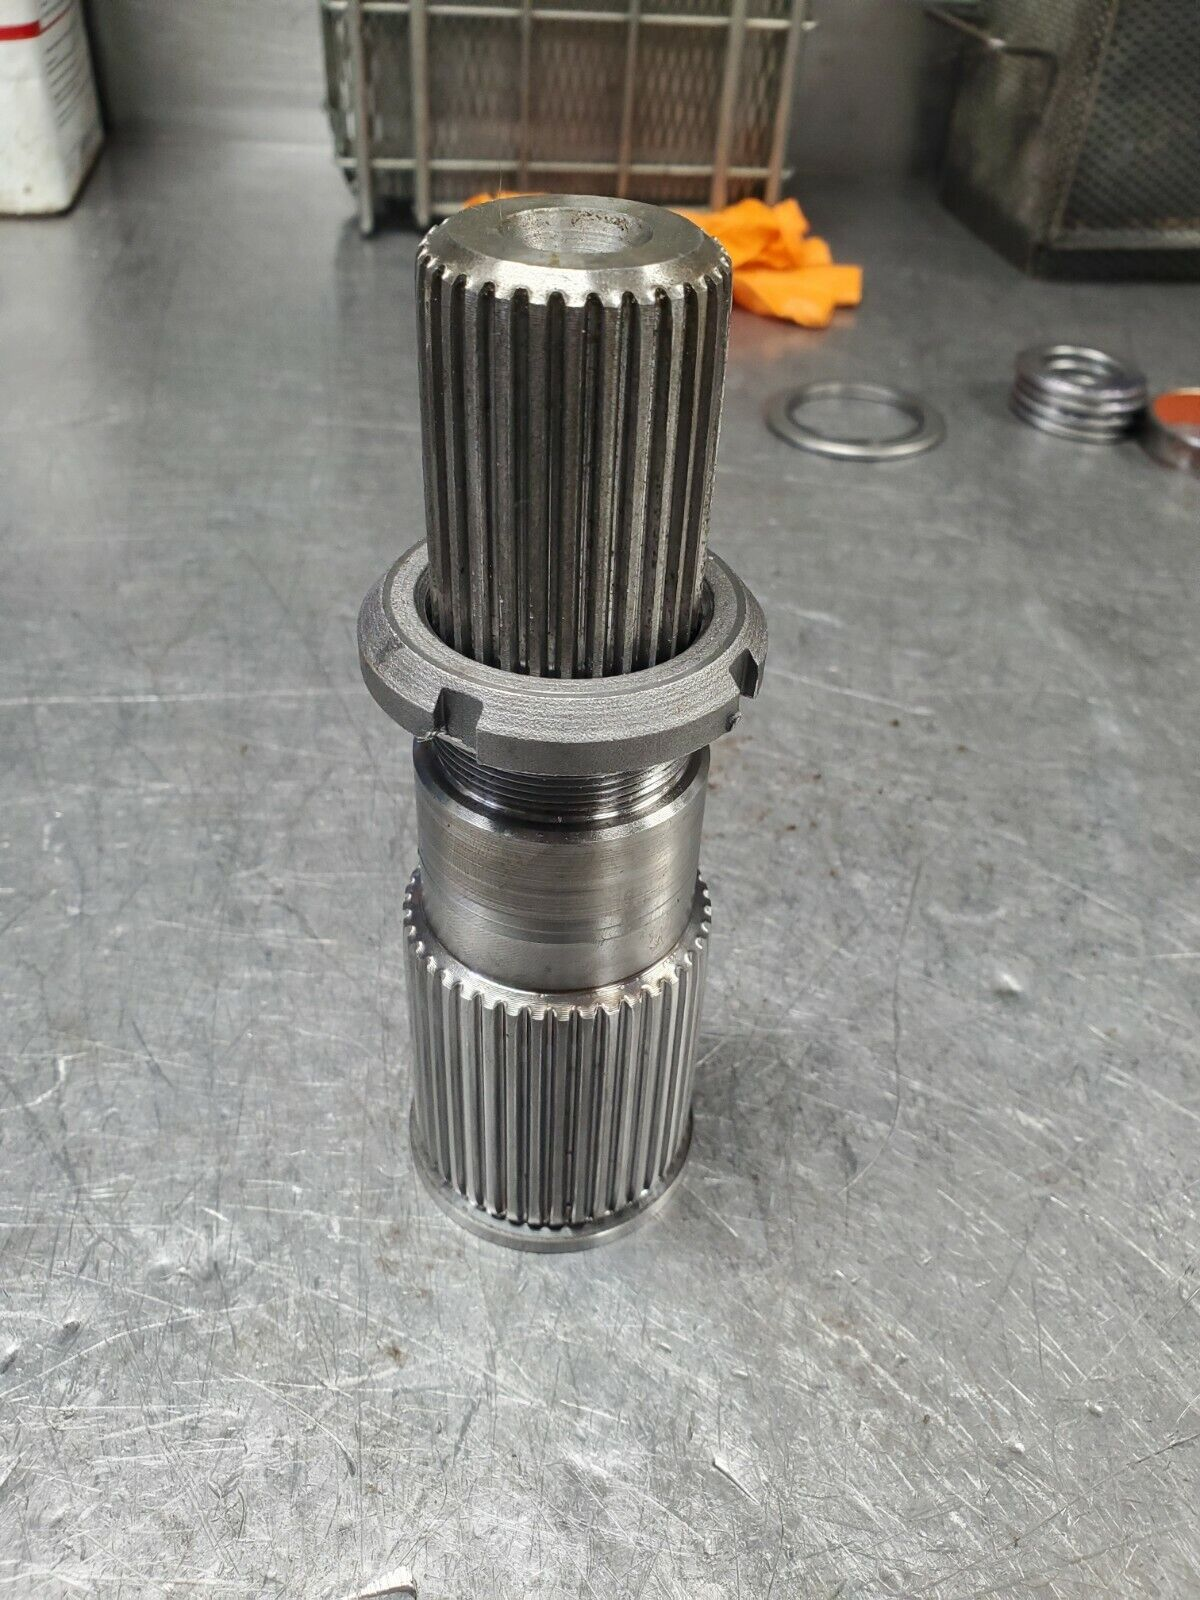 Allison 1000 2000 4x4 output shaft with torrington and retainer nut